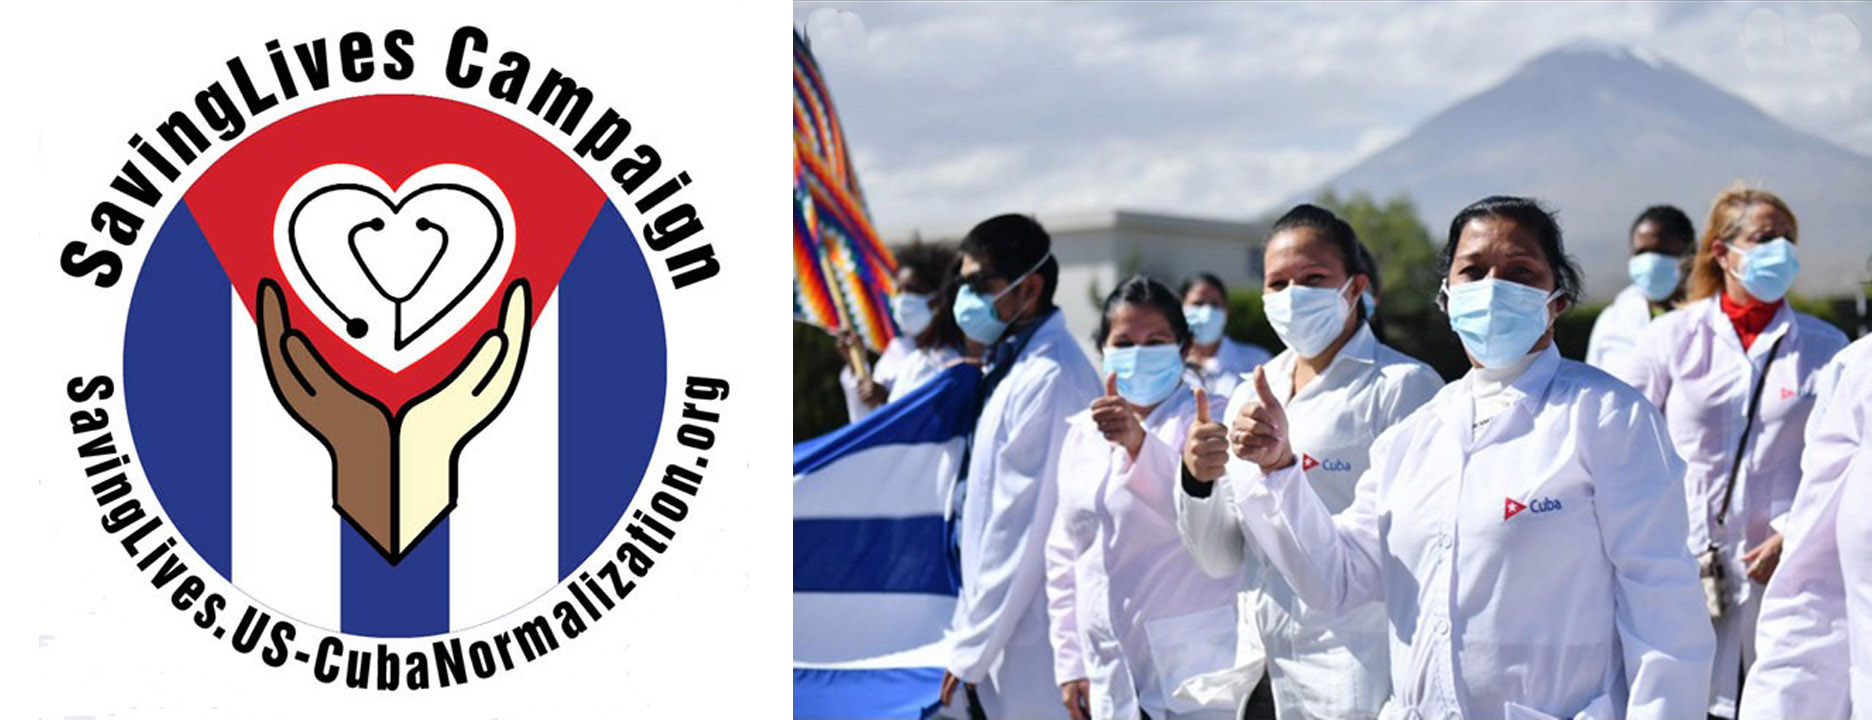 """Masked Cubans giving """"thumbs up"""" and logo for the SavingLives Campaign"""